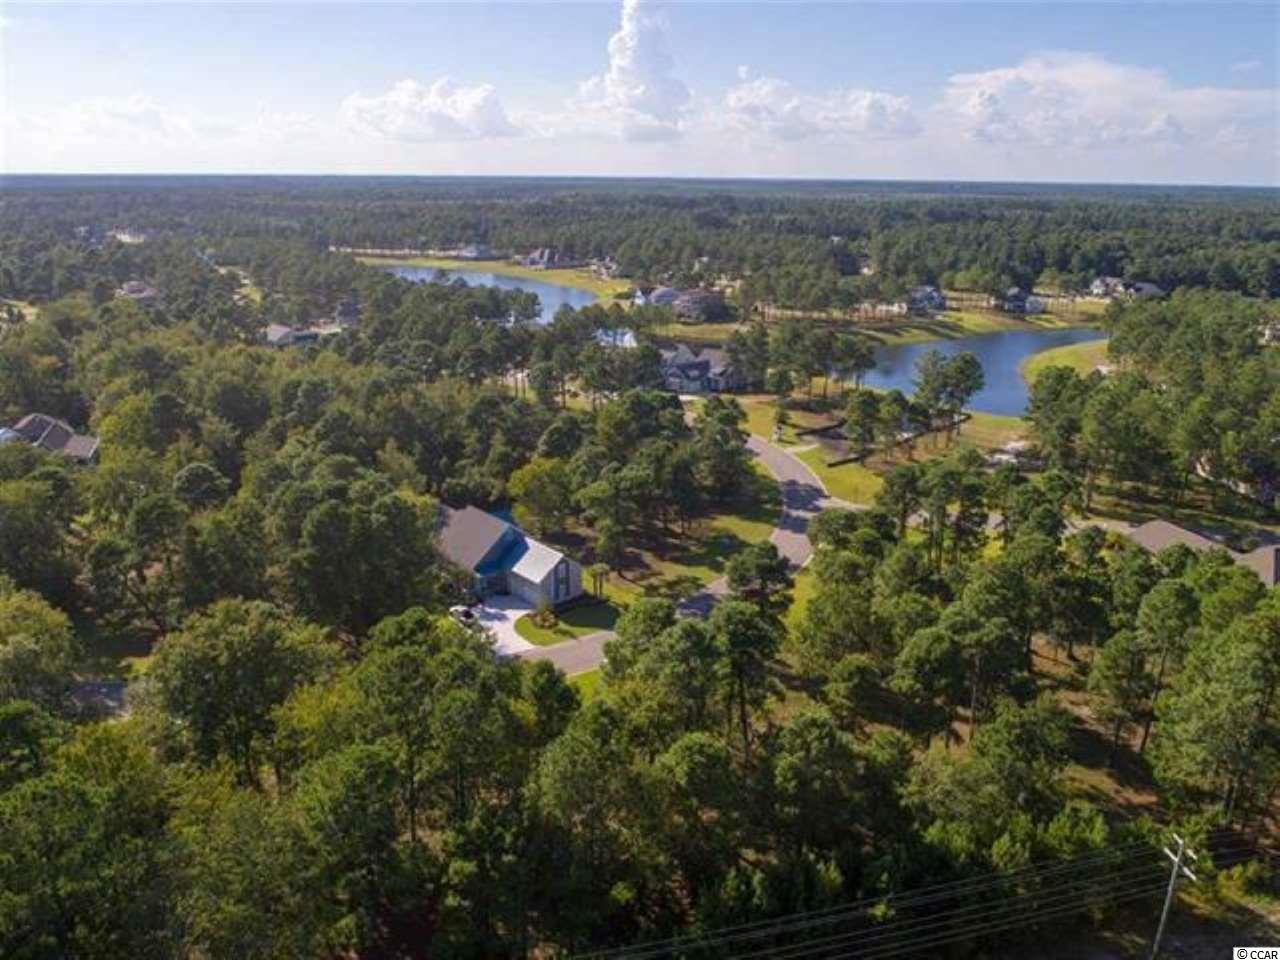 Gorgeous lakefront lot located in the highly sought after gated community of Waterbridge in Carolina Forest ! Lot 211 features 60ft of lake front with beautiful water views and is an easy walk to the amenities center. Come build your dream home w/ no time frame to build. On top of this fantastic lot, Waterbridge's awesome amenities include a huge pool area, tennis, fitness center, volleyball & basketball courts, boat storage, a boat launch & pier, fire pit, swim-up refreshments bar. Conveniently located close to the award winning school system and just a short drive to the Tanger Outlets, MB Airport, hospital, shopping, dining, entertainment, golf, area attractions, & the beautiful Atlantic Ocean w/ 60 miles of white sandy beaches ! Don't miss ~ come live the dream!